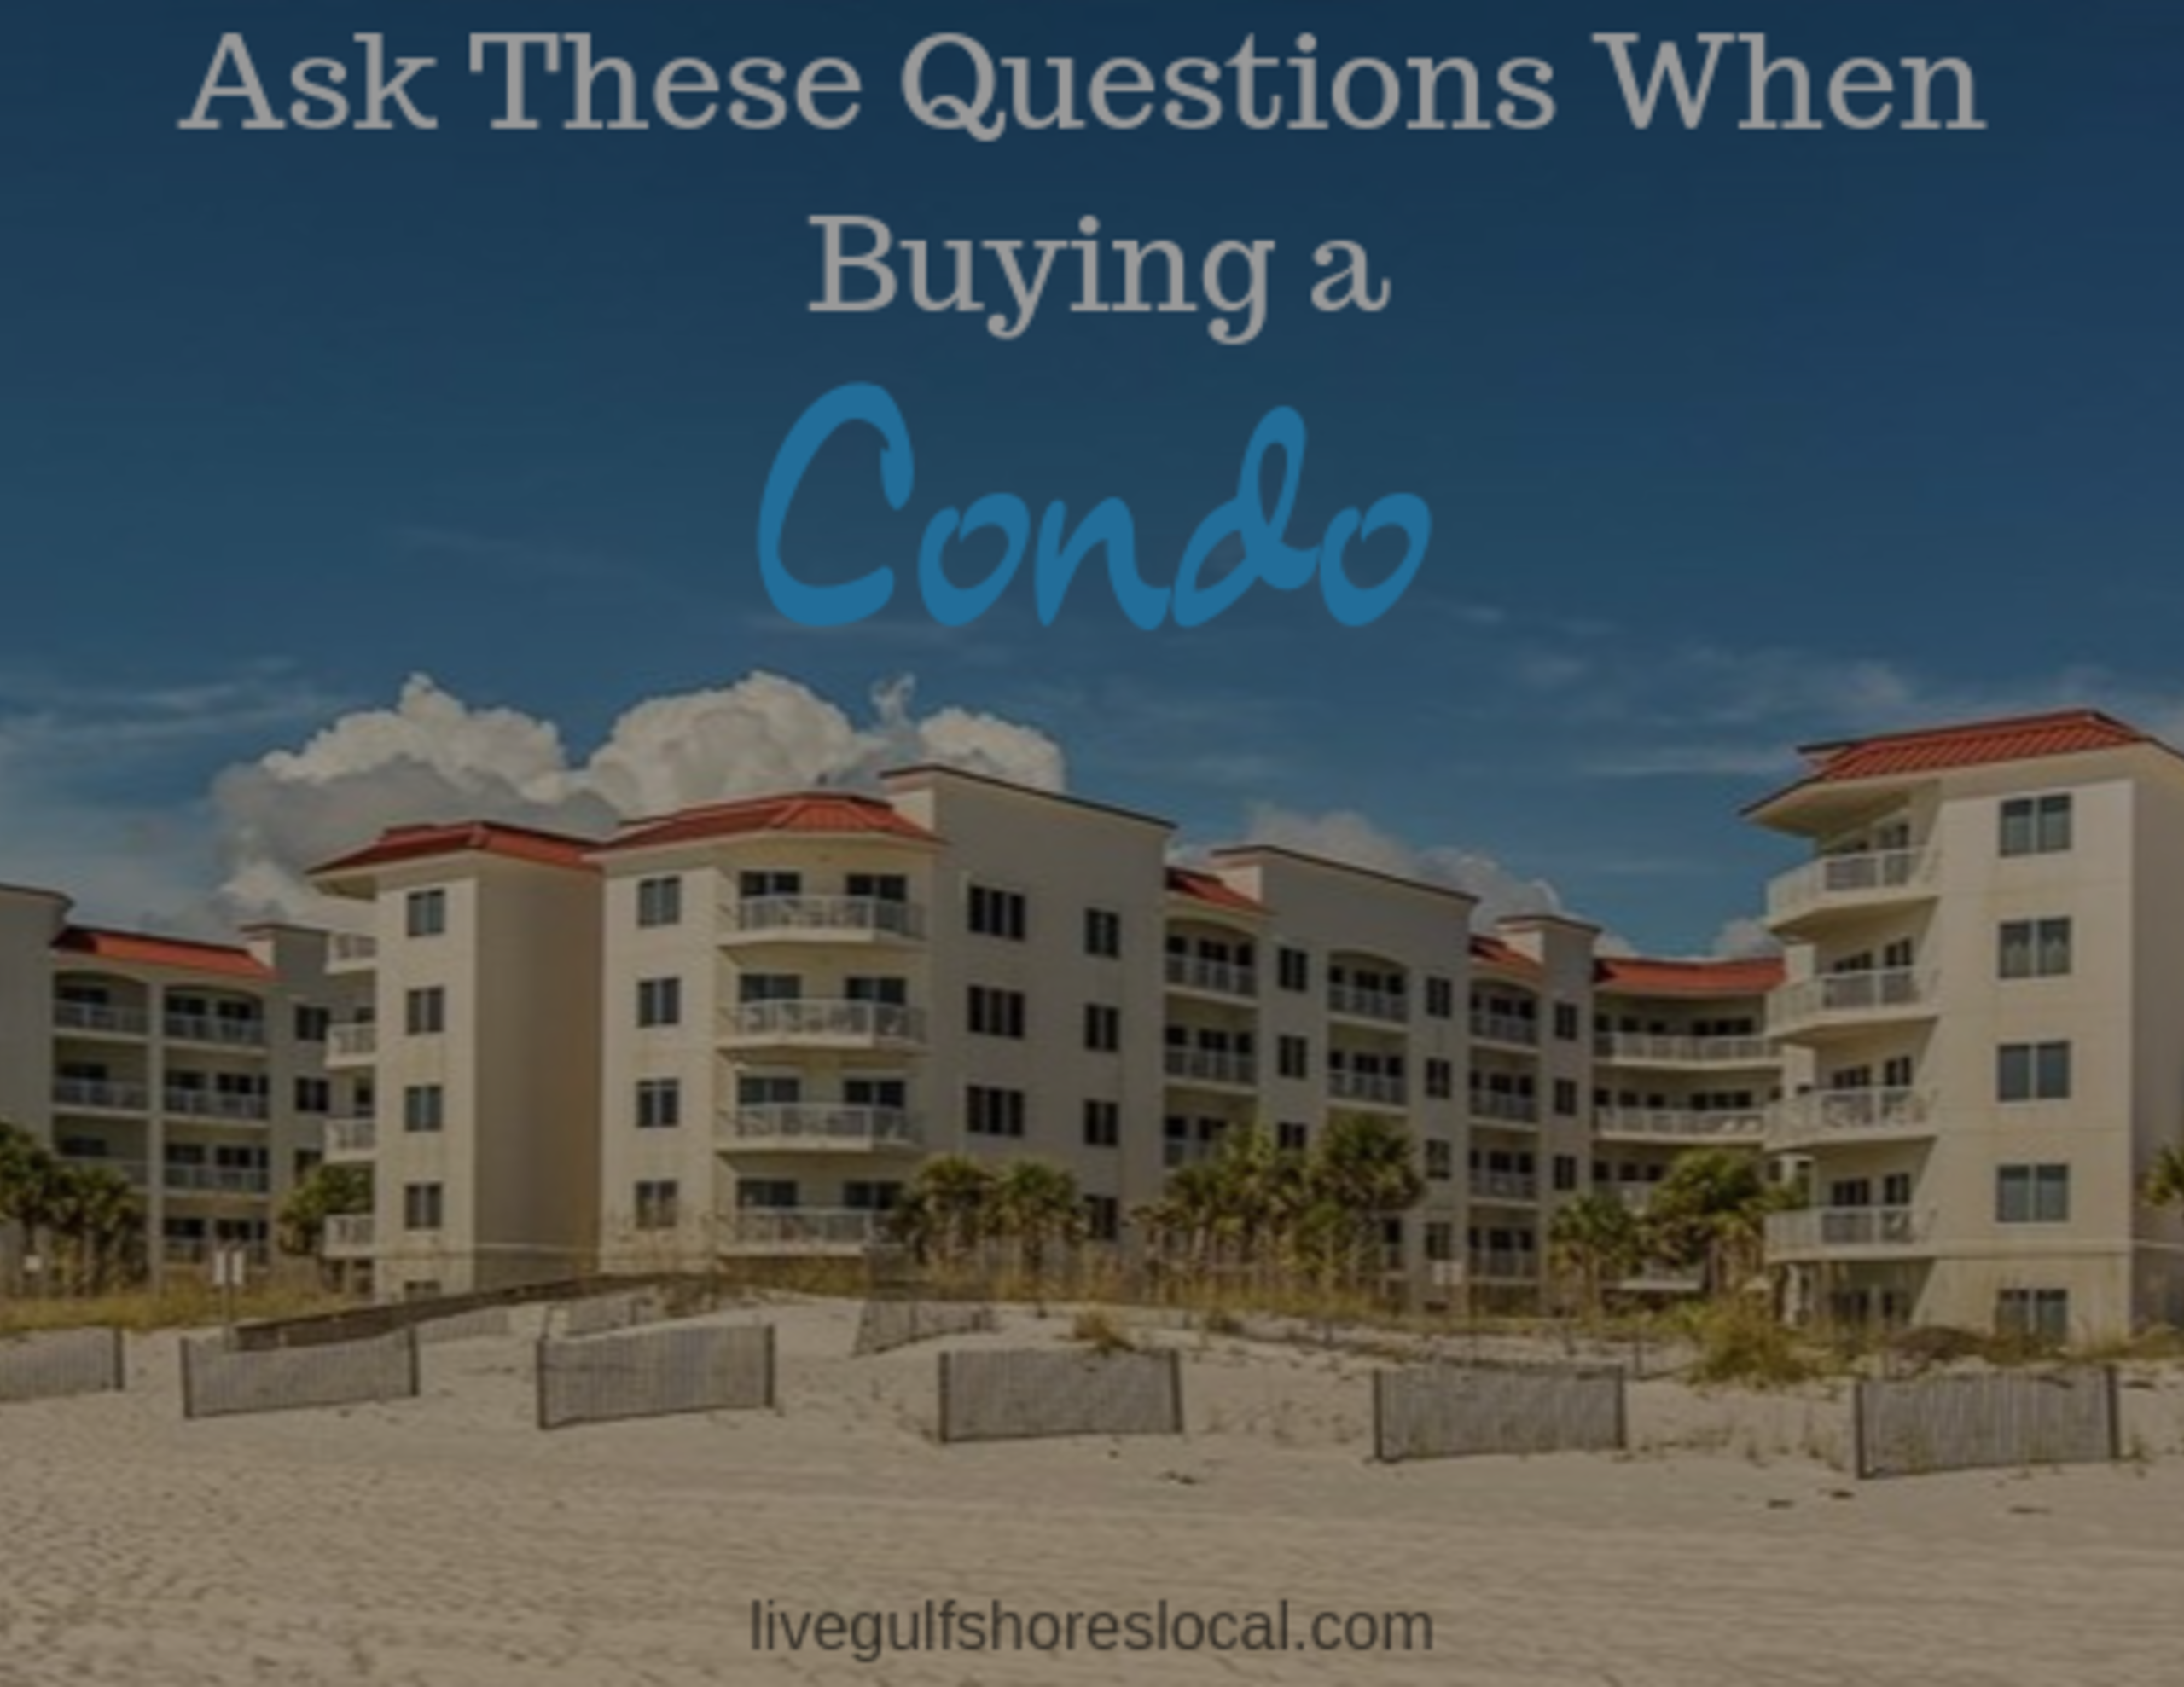 Ask These Questions When Buying a Condo